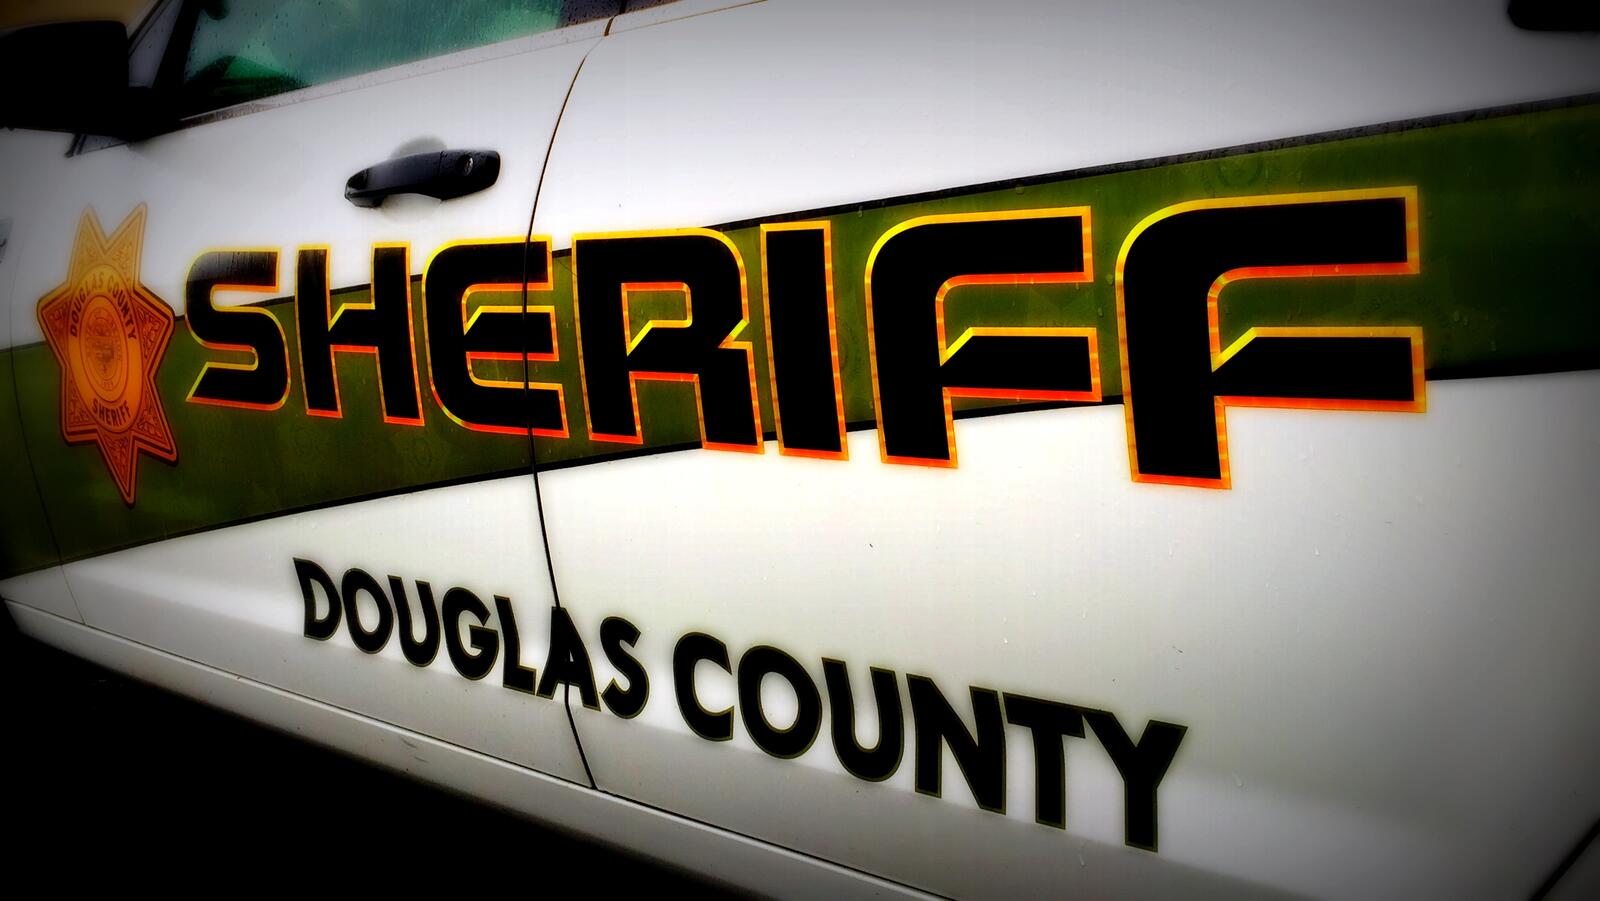 Douglas County Sheriff's Office - 140 Crime and Safety